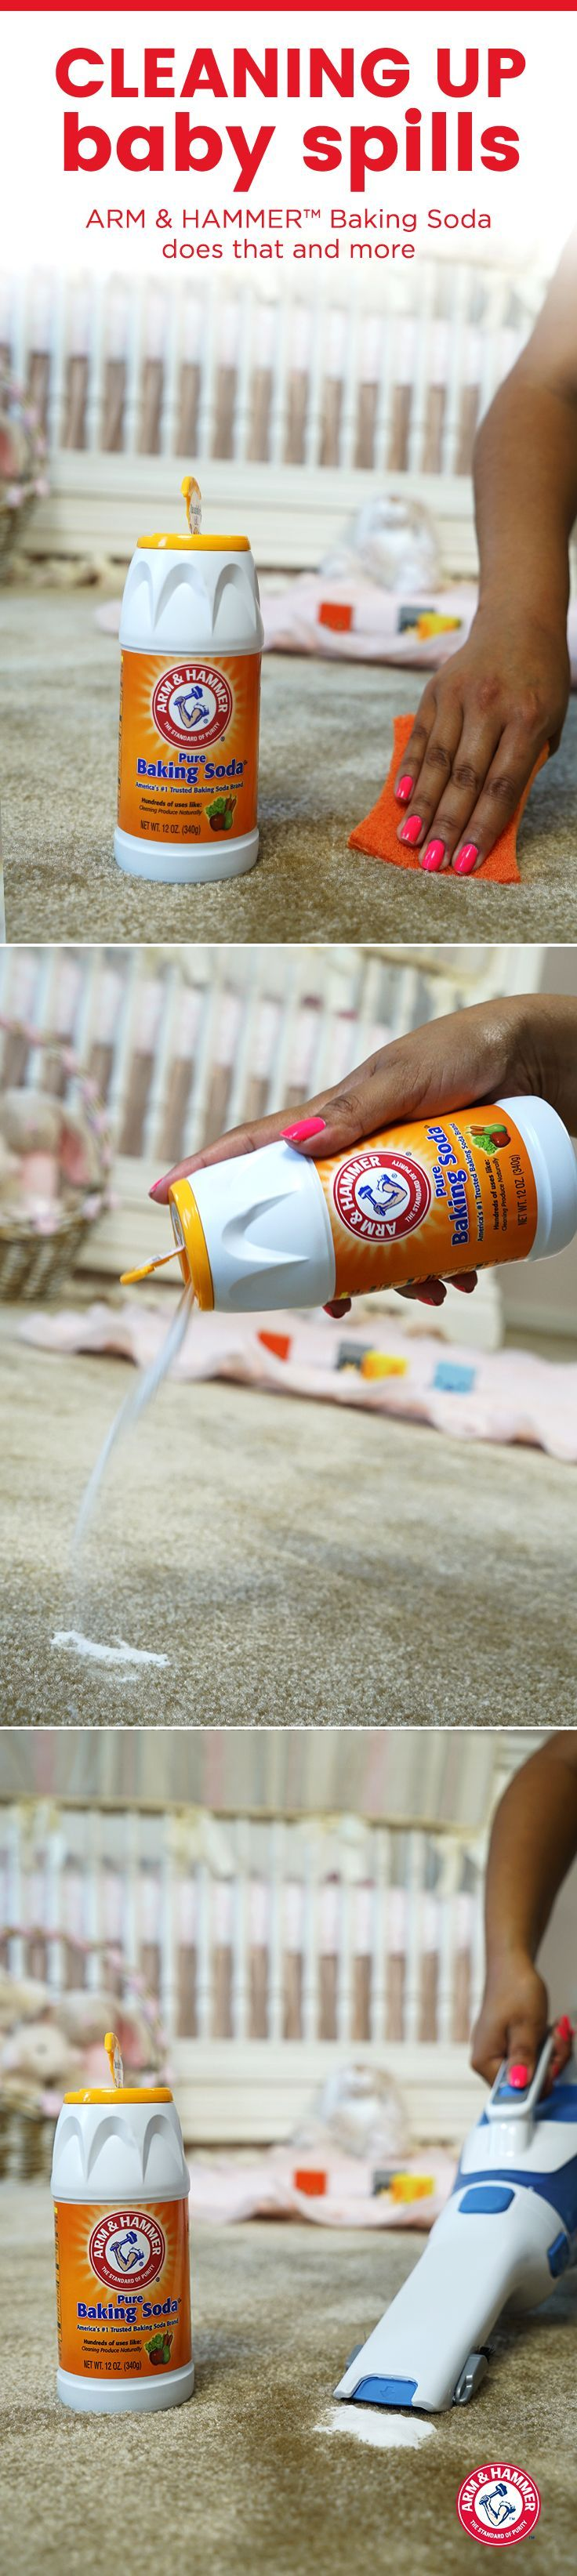 With ARM & HAMMER™ Baking Soda, there's no need to cry over spilled milk or other baby spills. To clean and deodorize baby accidents on carpets, first soak up as much of the spill as possible and clean the stain according to the carpet manufacturer's directions; then allow to dry. Once completely dry, sprinkle baking soda liberally and let sit for 15 minutes (HINT: Check for color fastness first before applying baking soda). Then vacuum carpet as usual. #CatSprayingBakingSoda